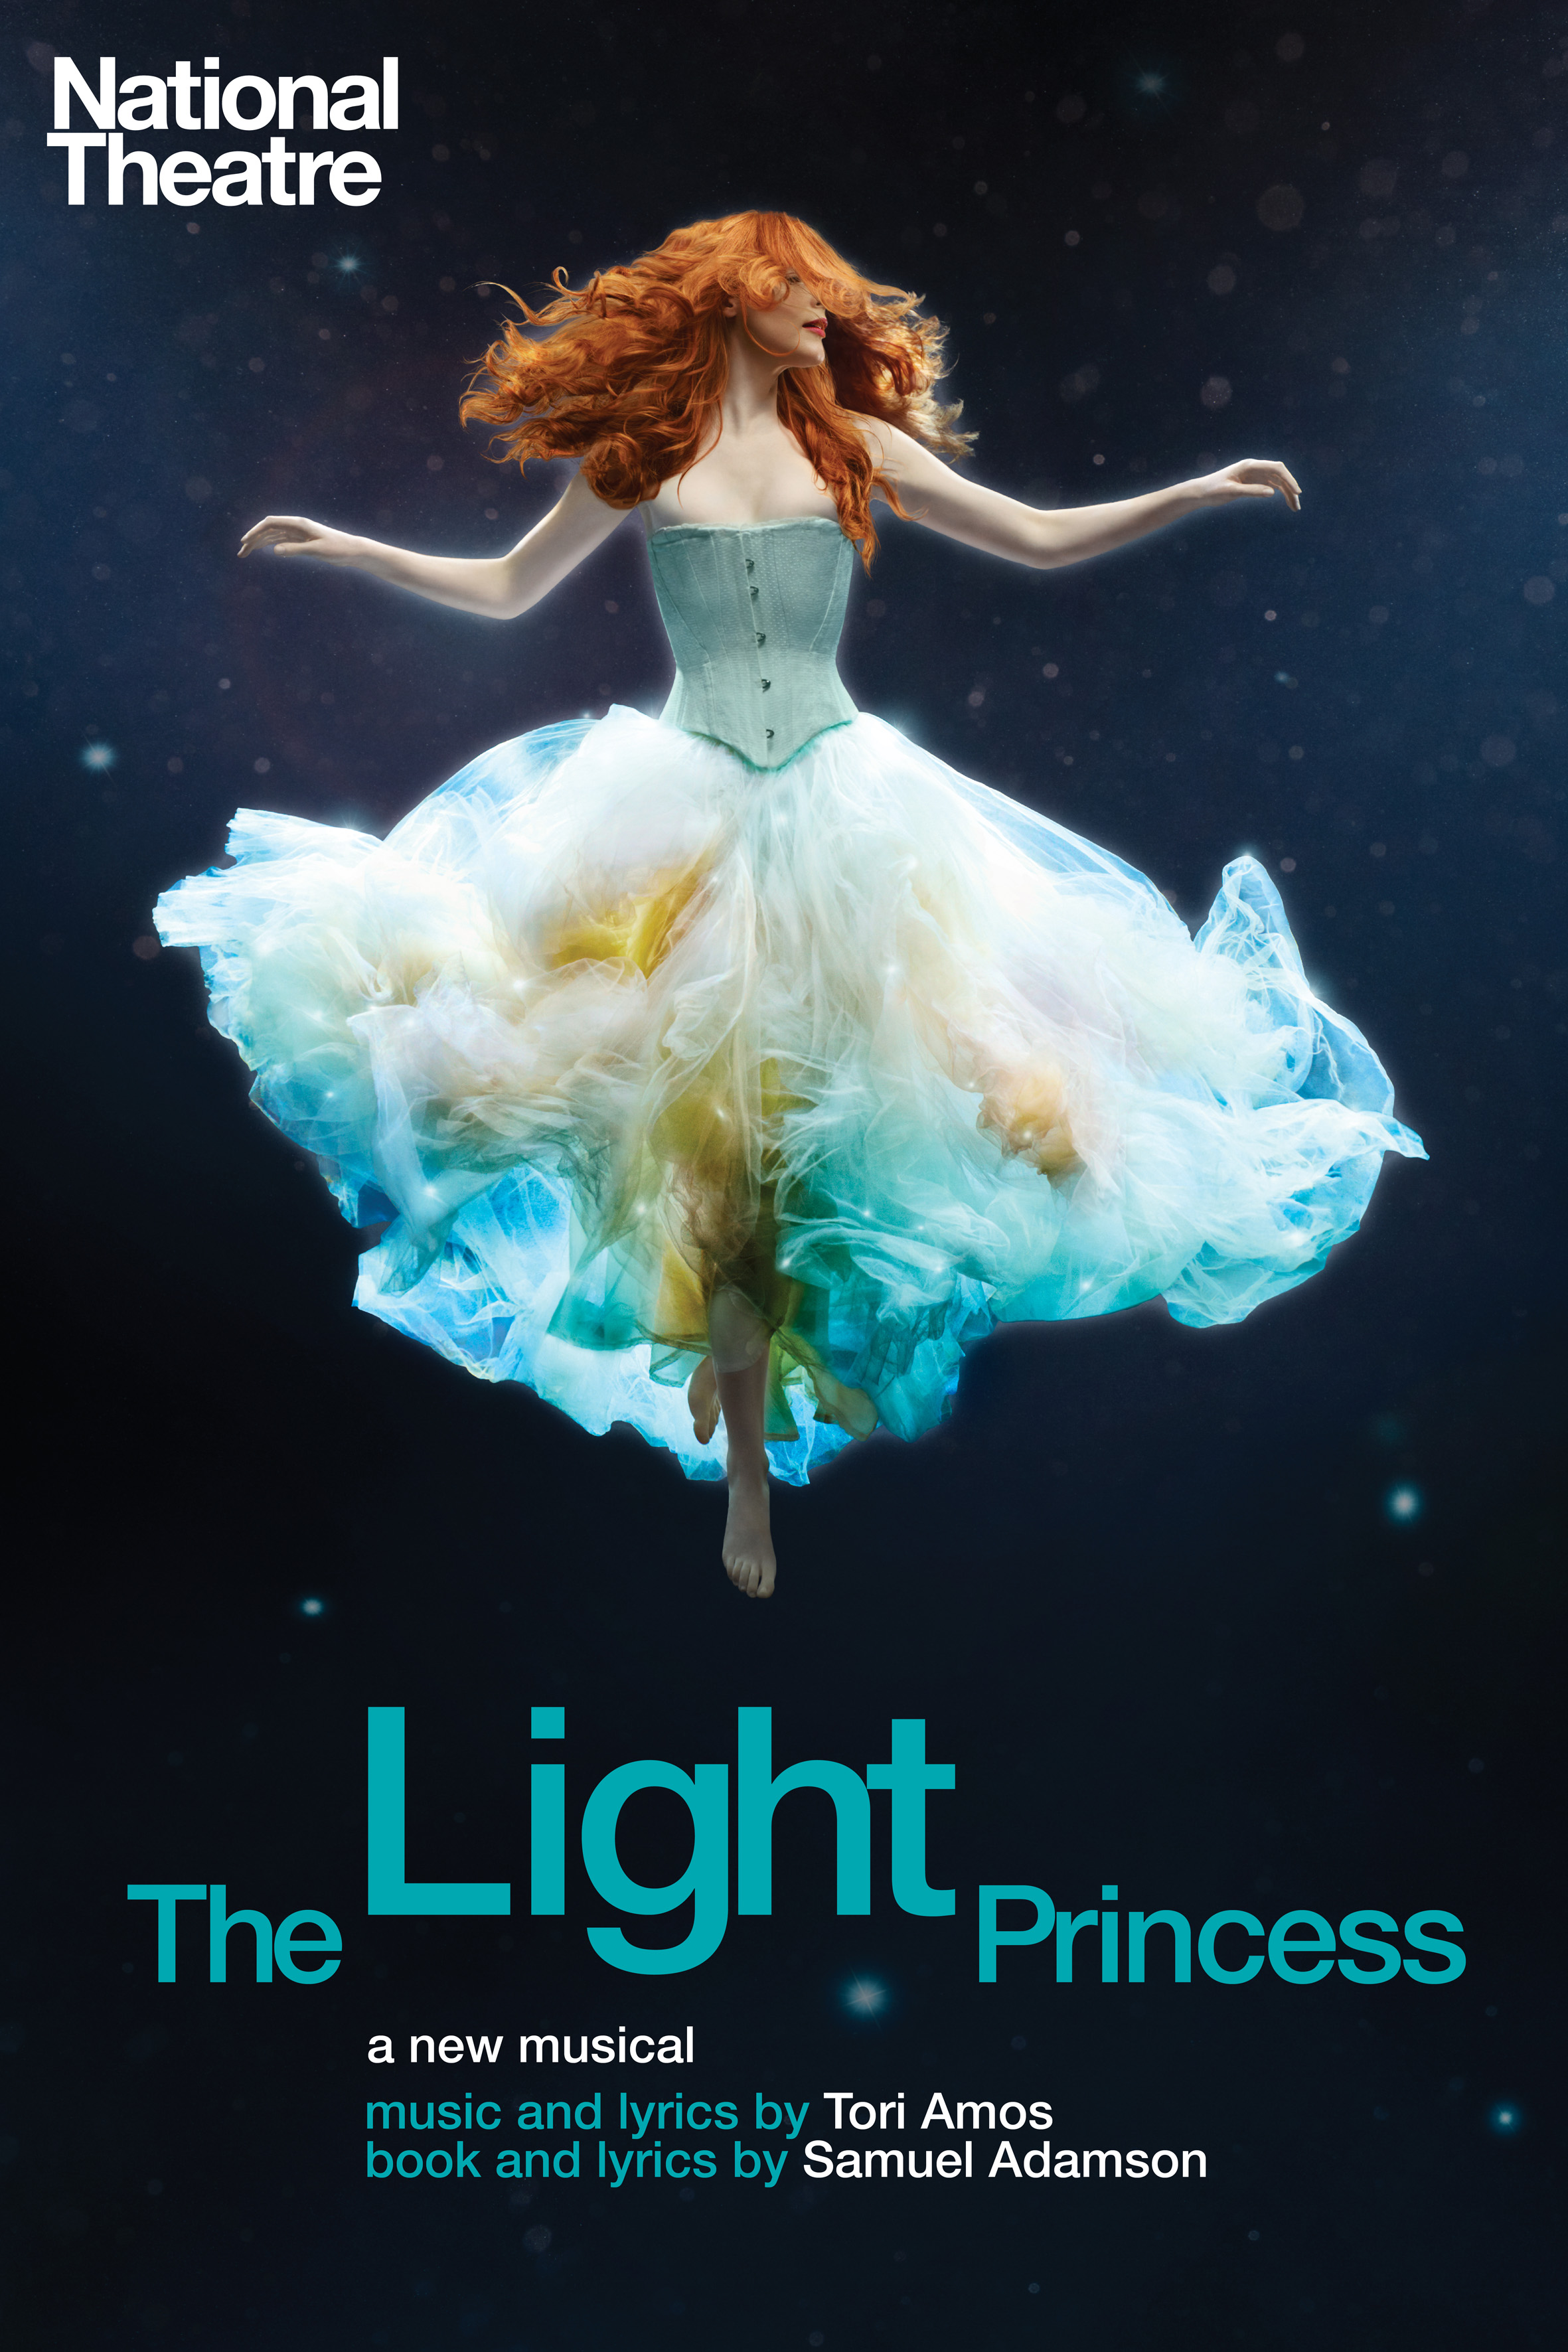 National Theatre, The Light Princess. Puppet maker, Puppet designers